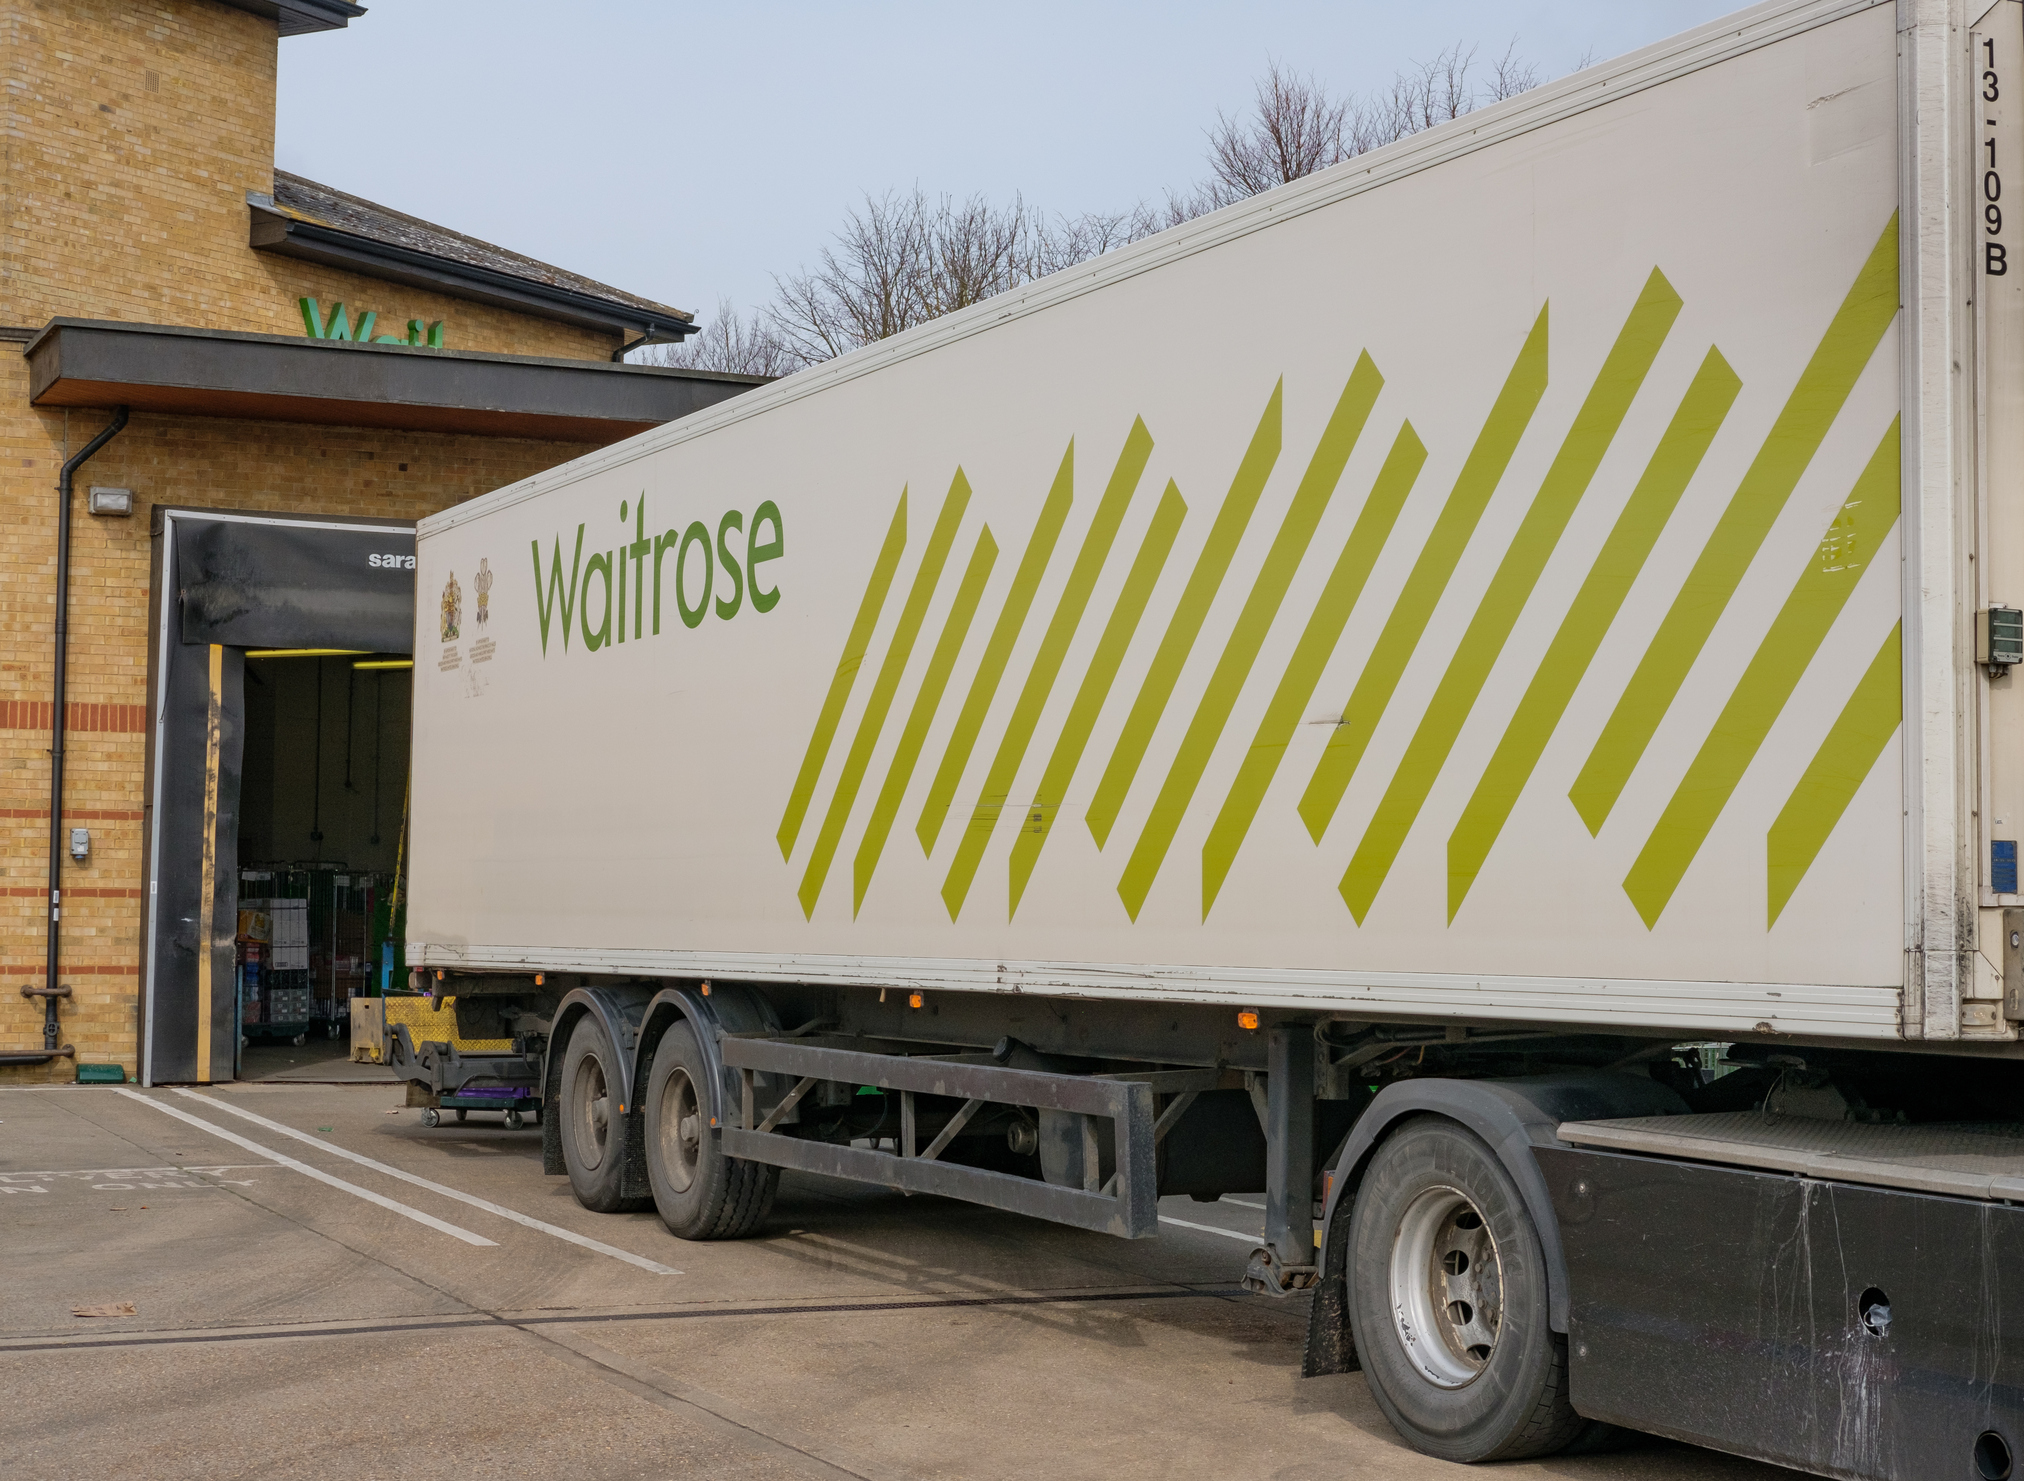 UK - March 12 2016 Istock Image Waitrose HGV Loading